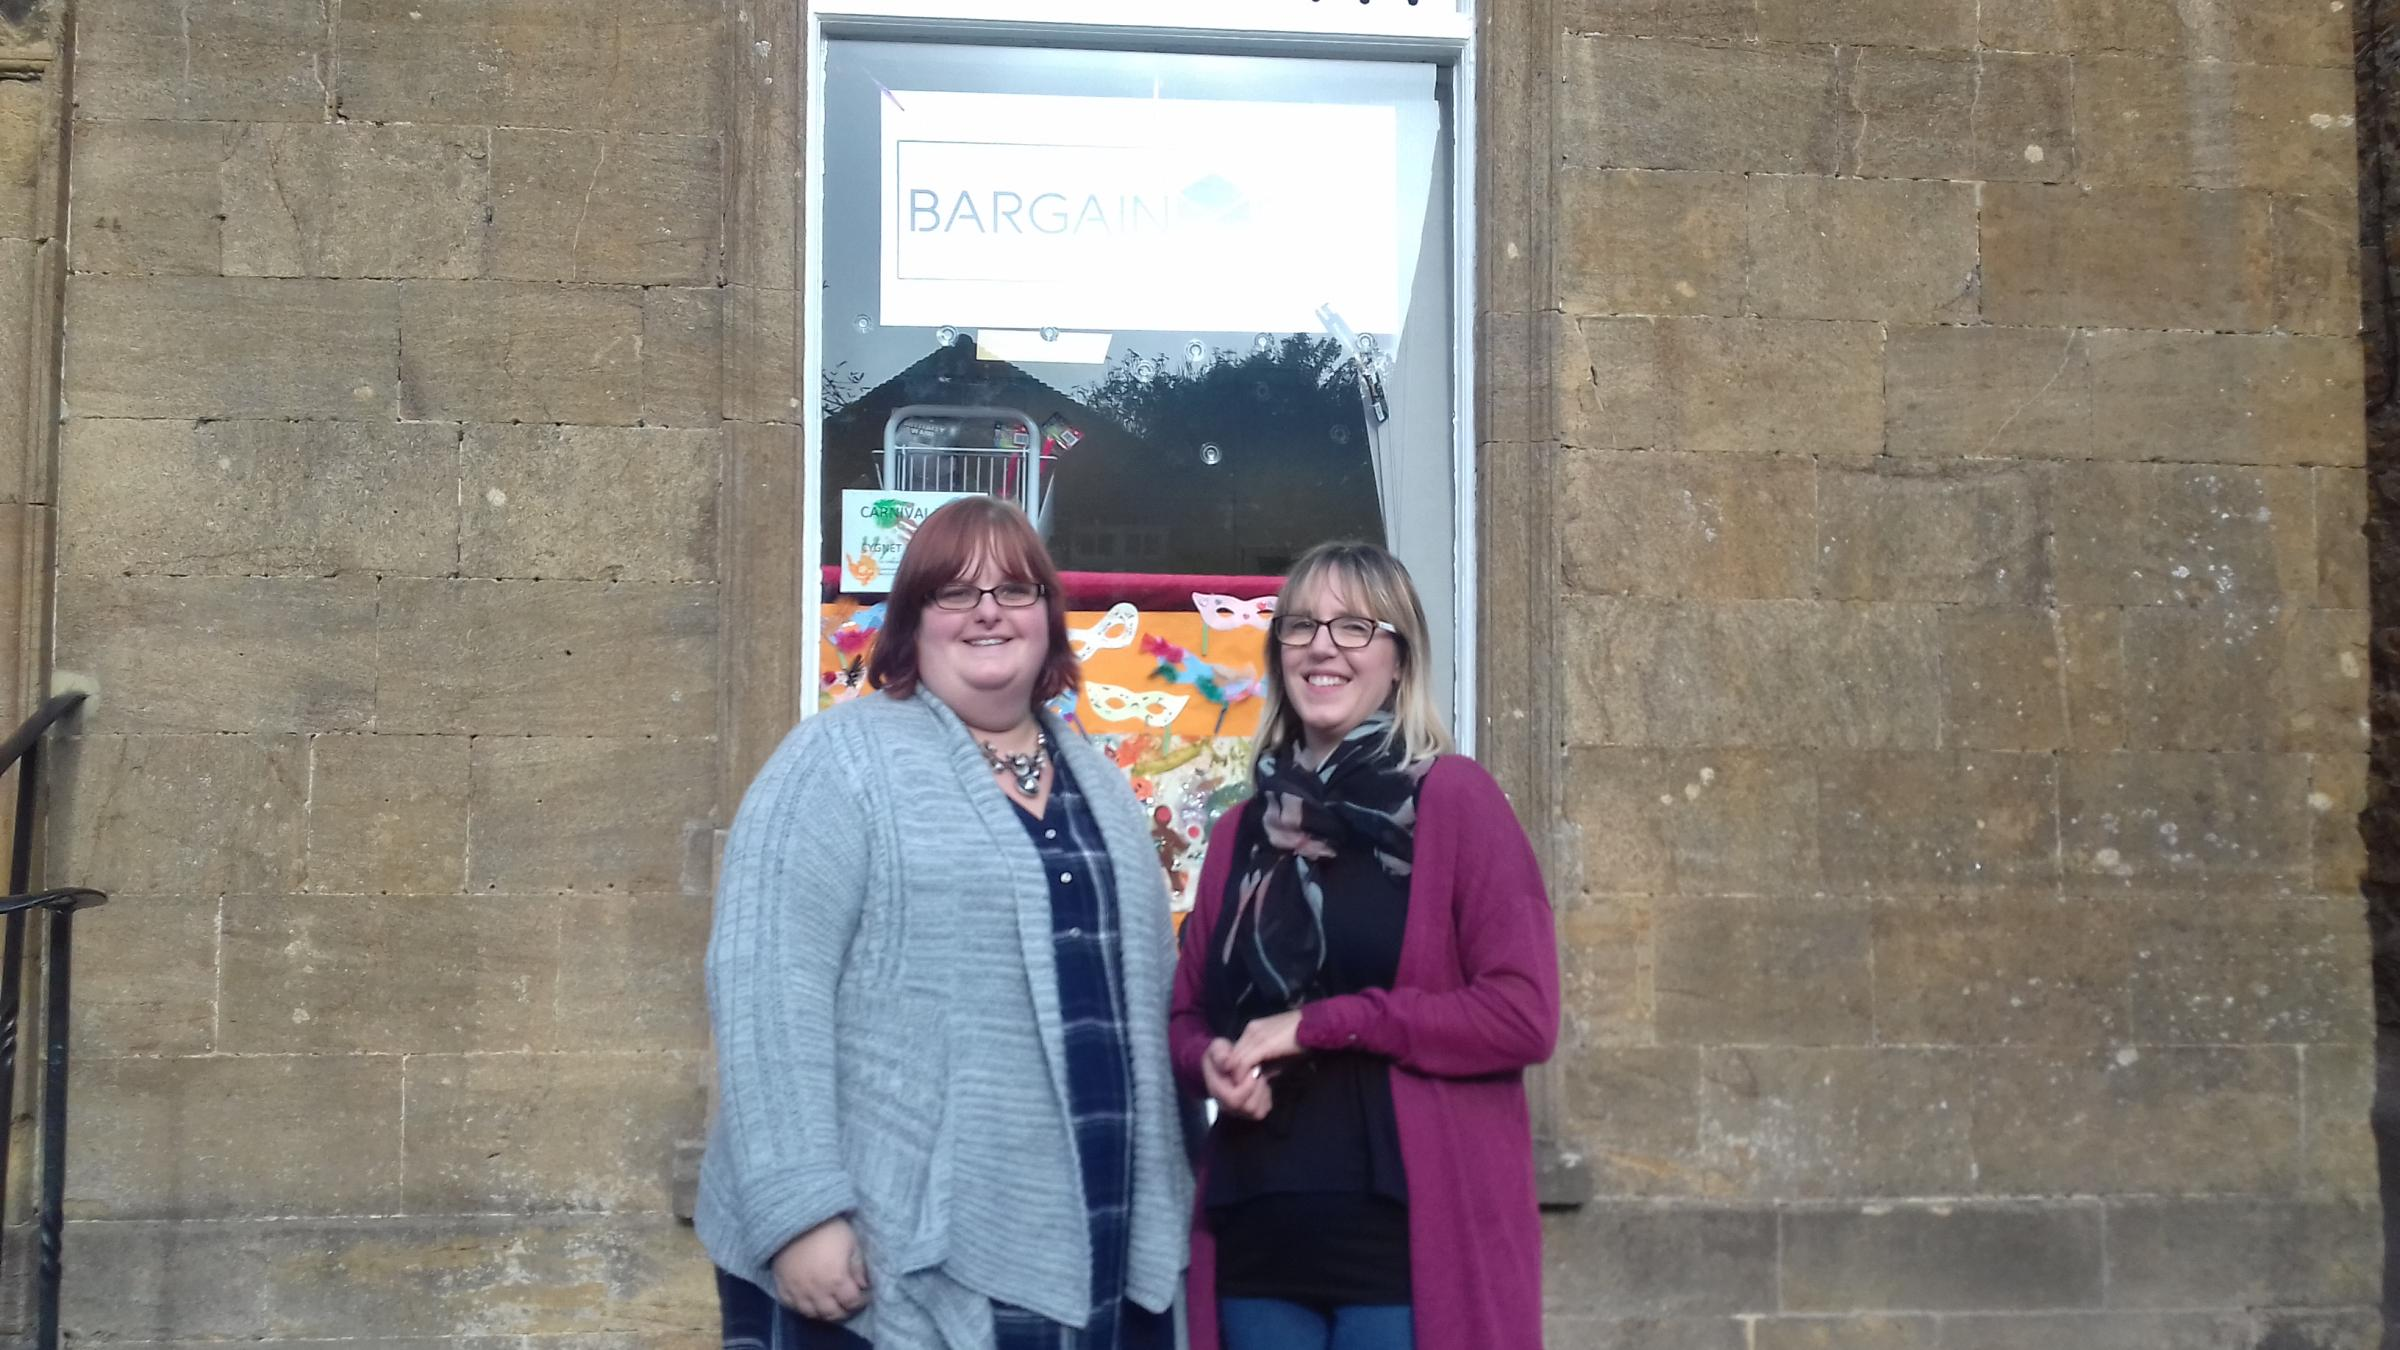 Ilminster company Bargain Box set to open new store in the town centre tomorrow